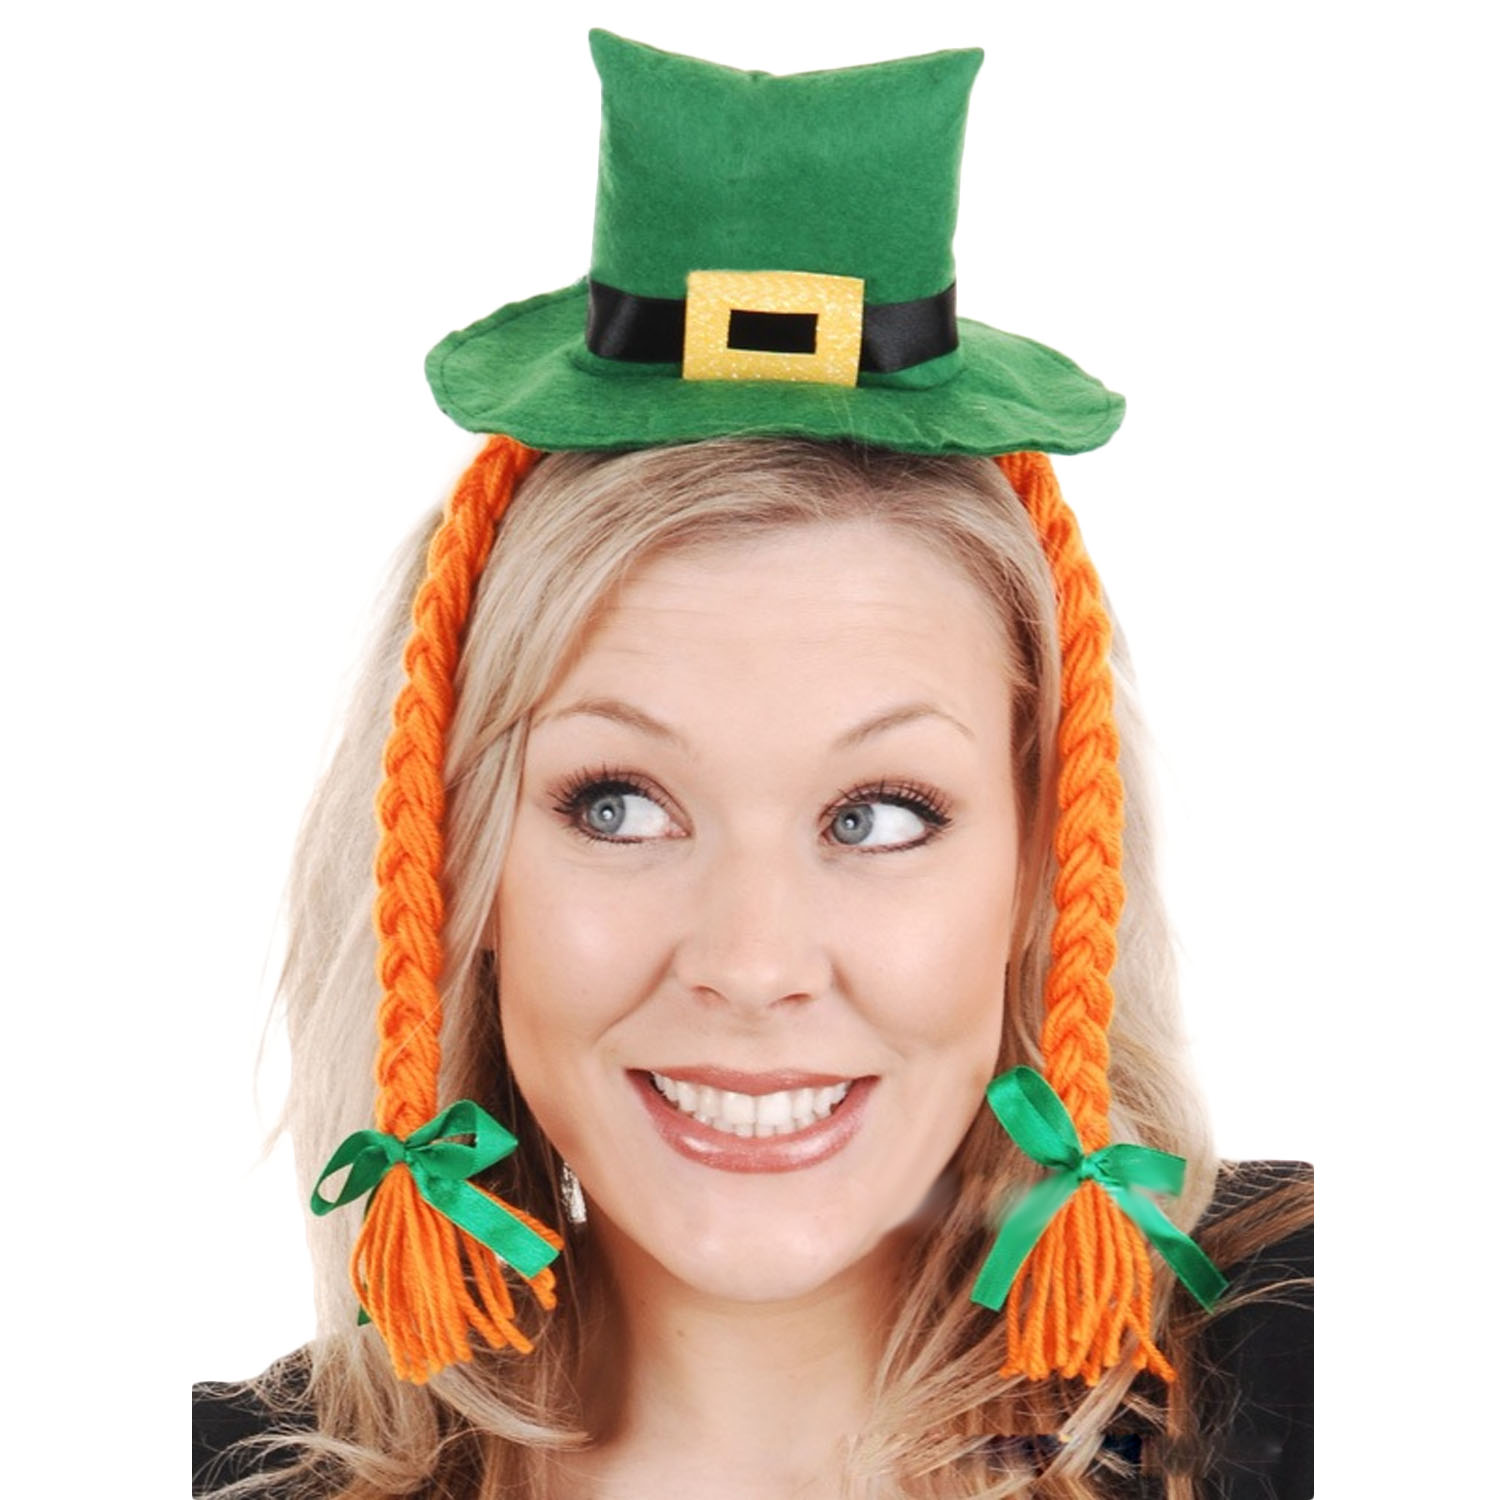 Cute Irish Saint St Patricks Day Shamrock Lucky Charm Green Cap Style Hair Hoop Headwear With Braid Festival Costume Accessories